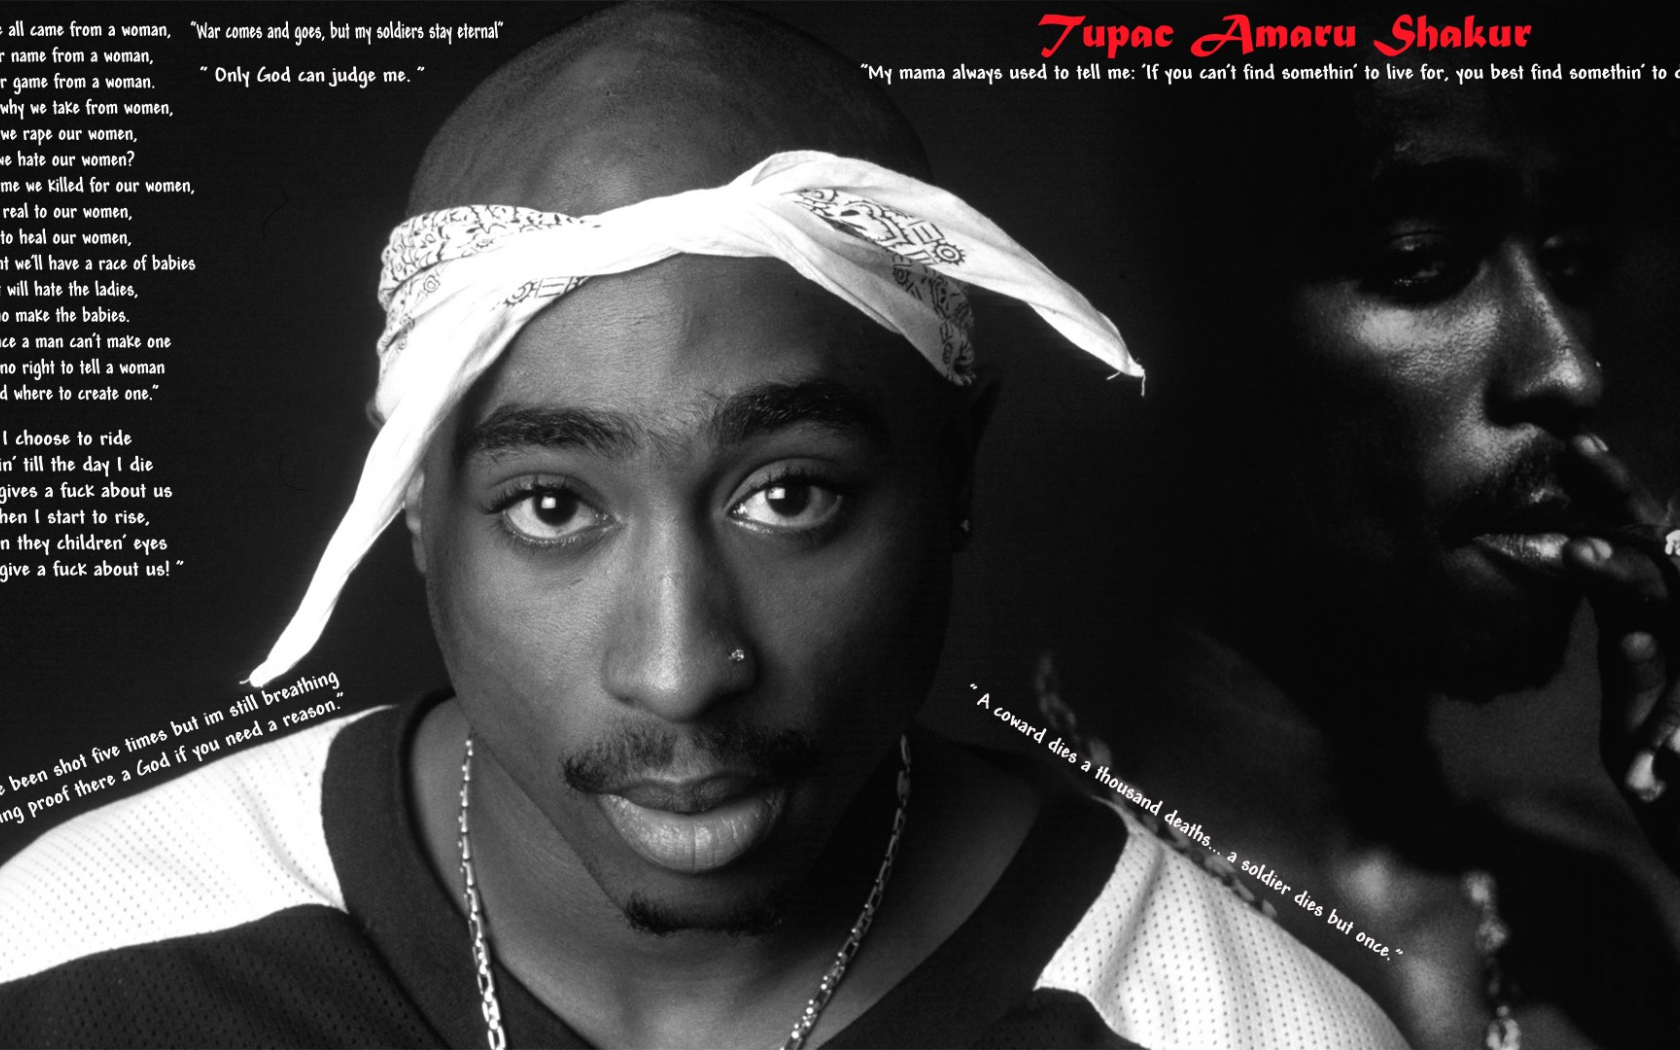 2pac Quotes Wallpaper QuotesGram 1920x1080 Download Resolutions Desktop